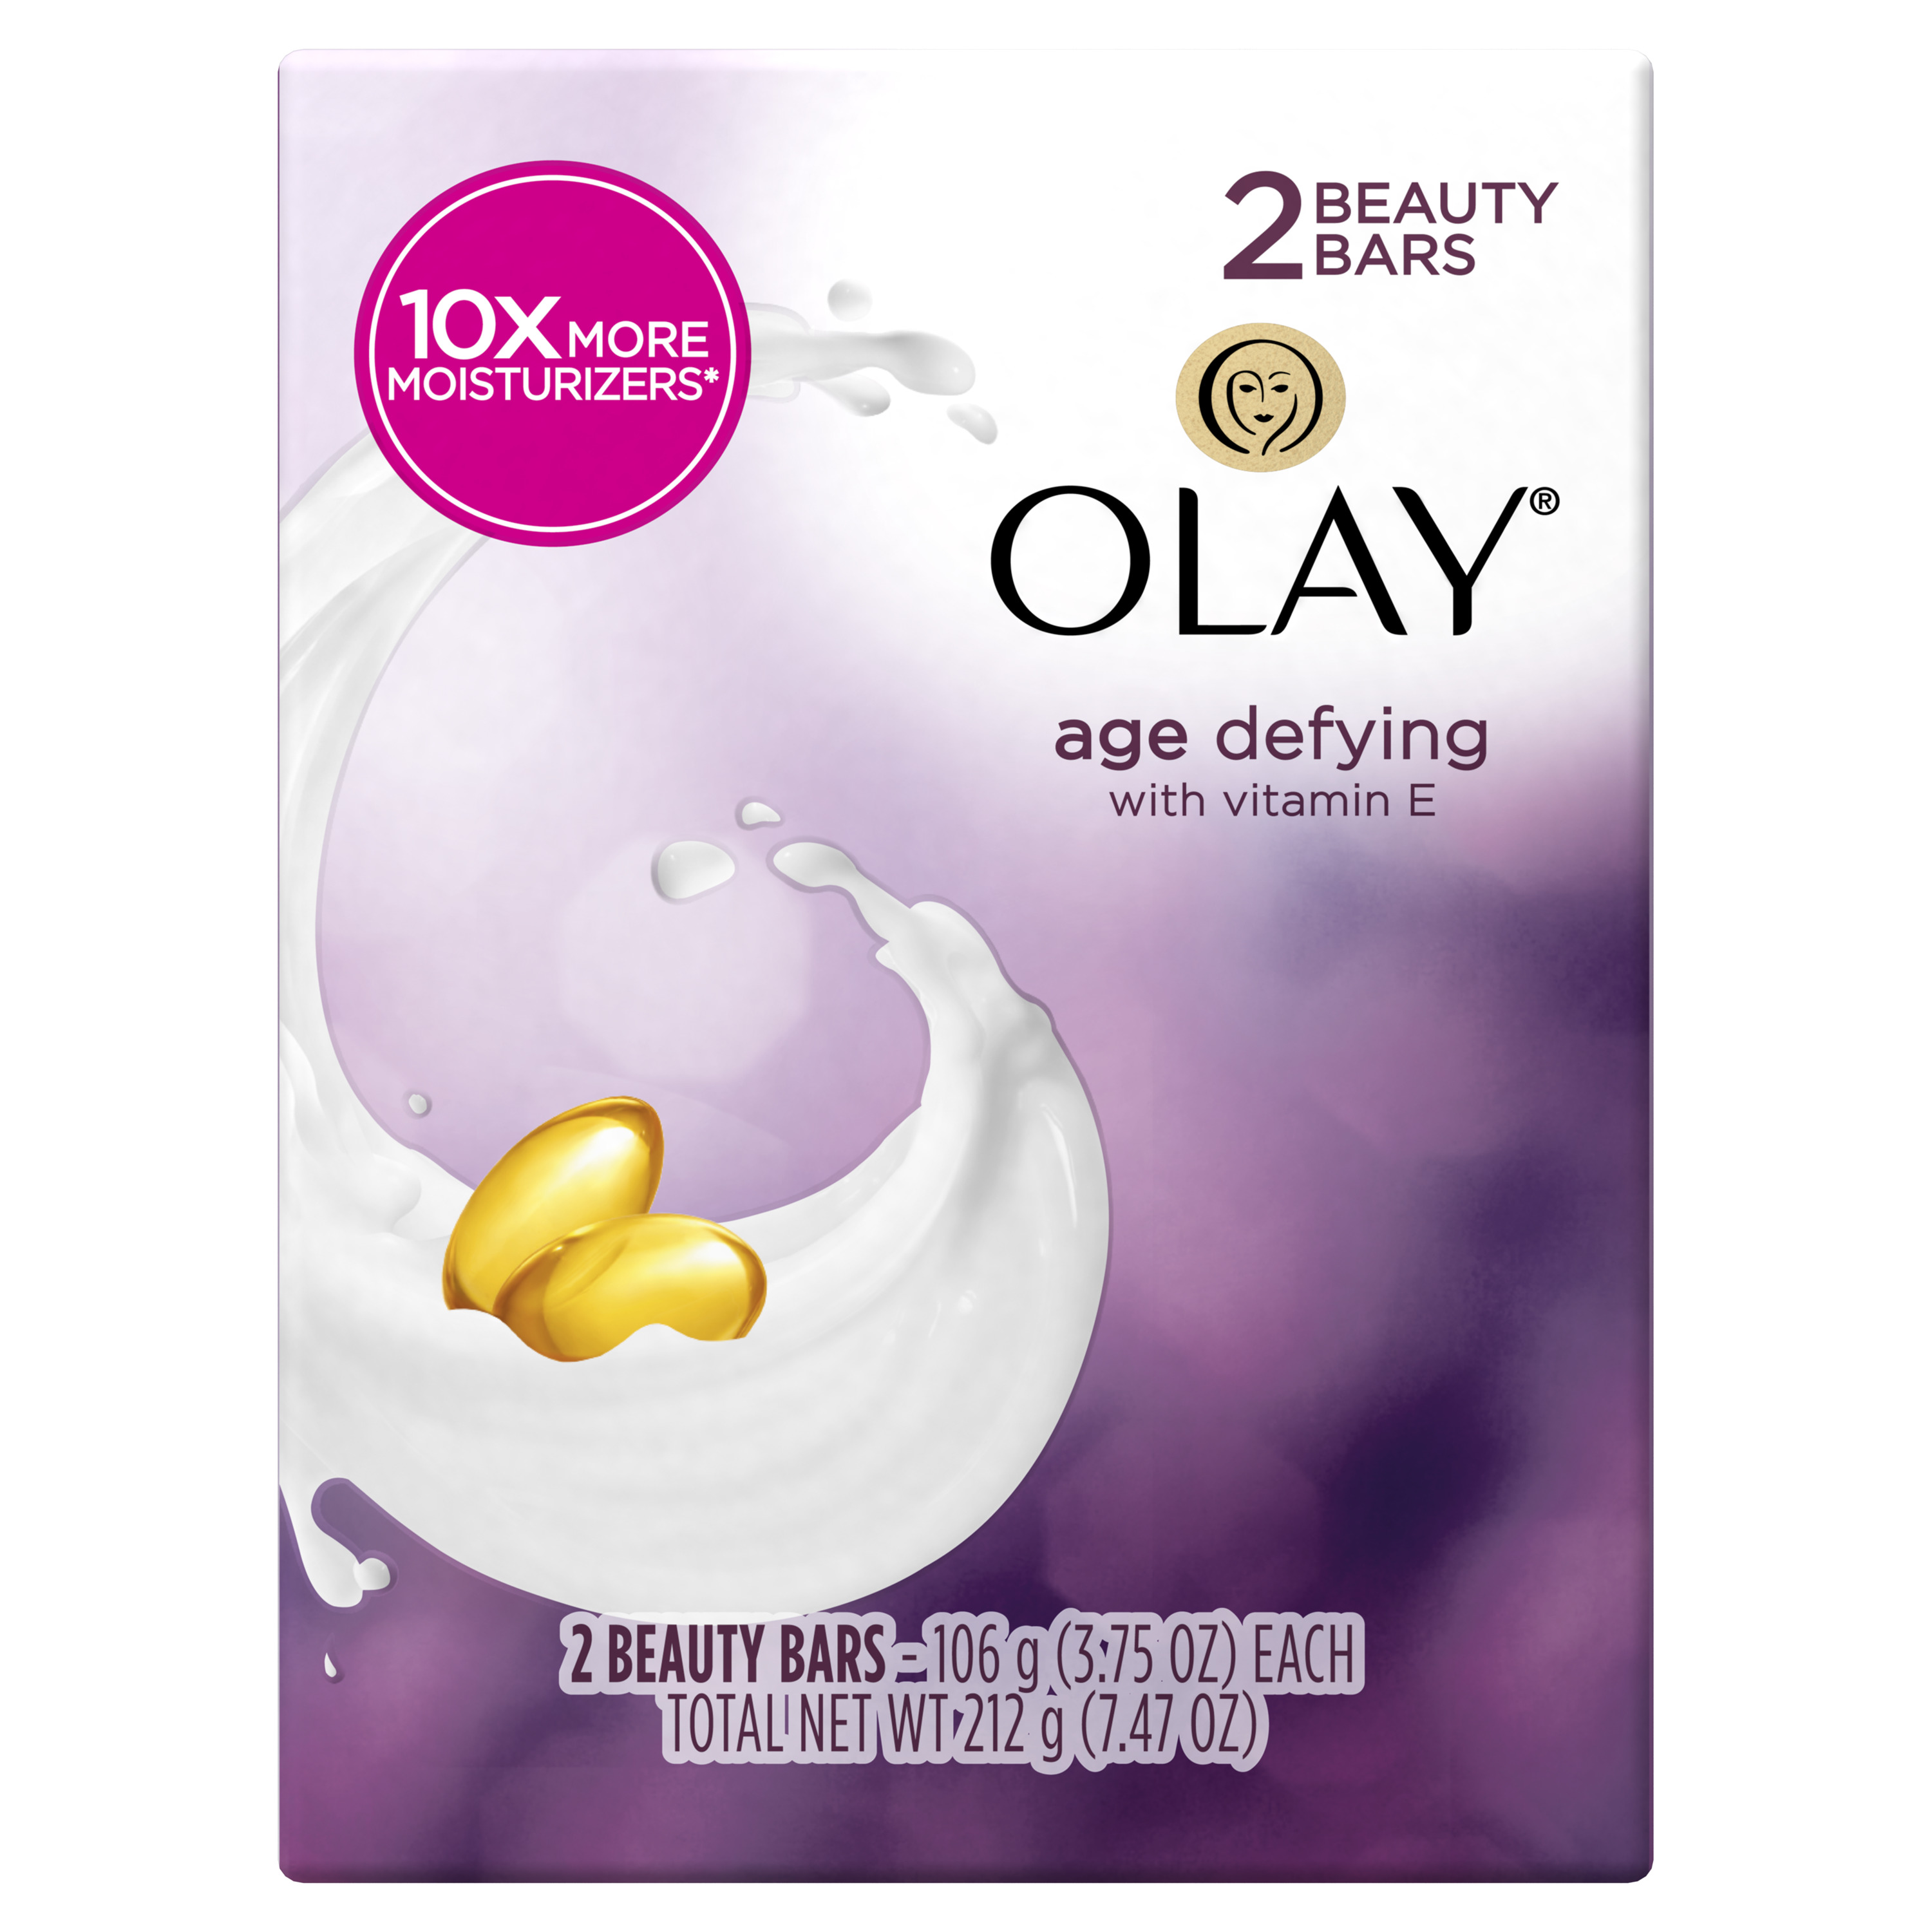 Olay Moisture Outlast Age Defying Beauty Bar 3.75 oz, 2 count